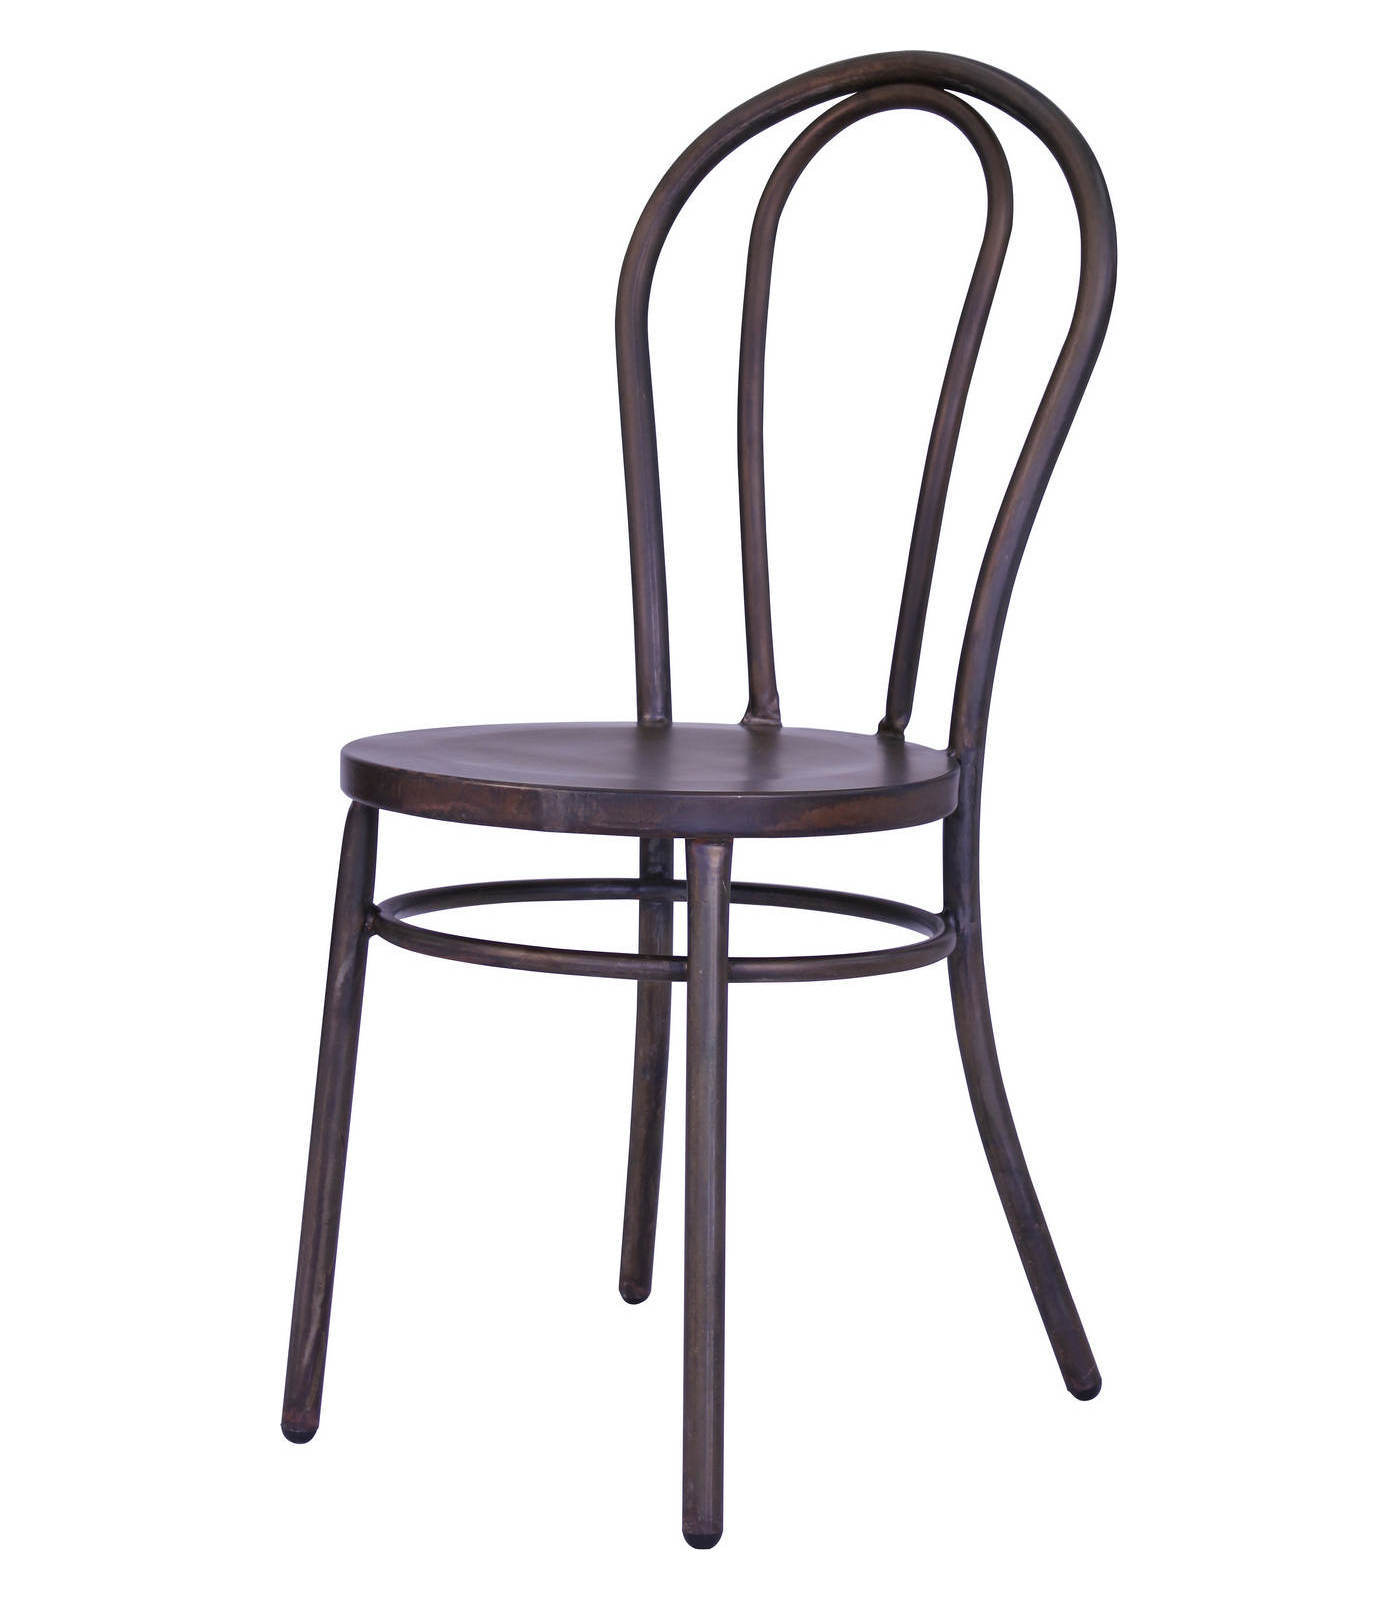 Metal Chairs Cafe Chair Hb